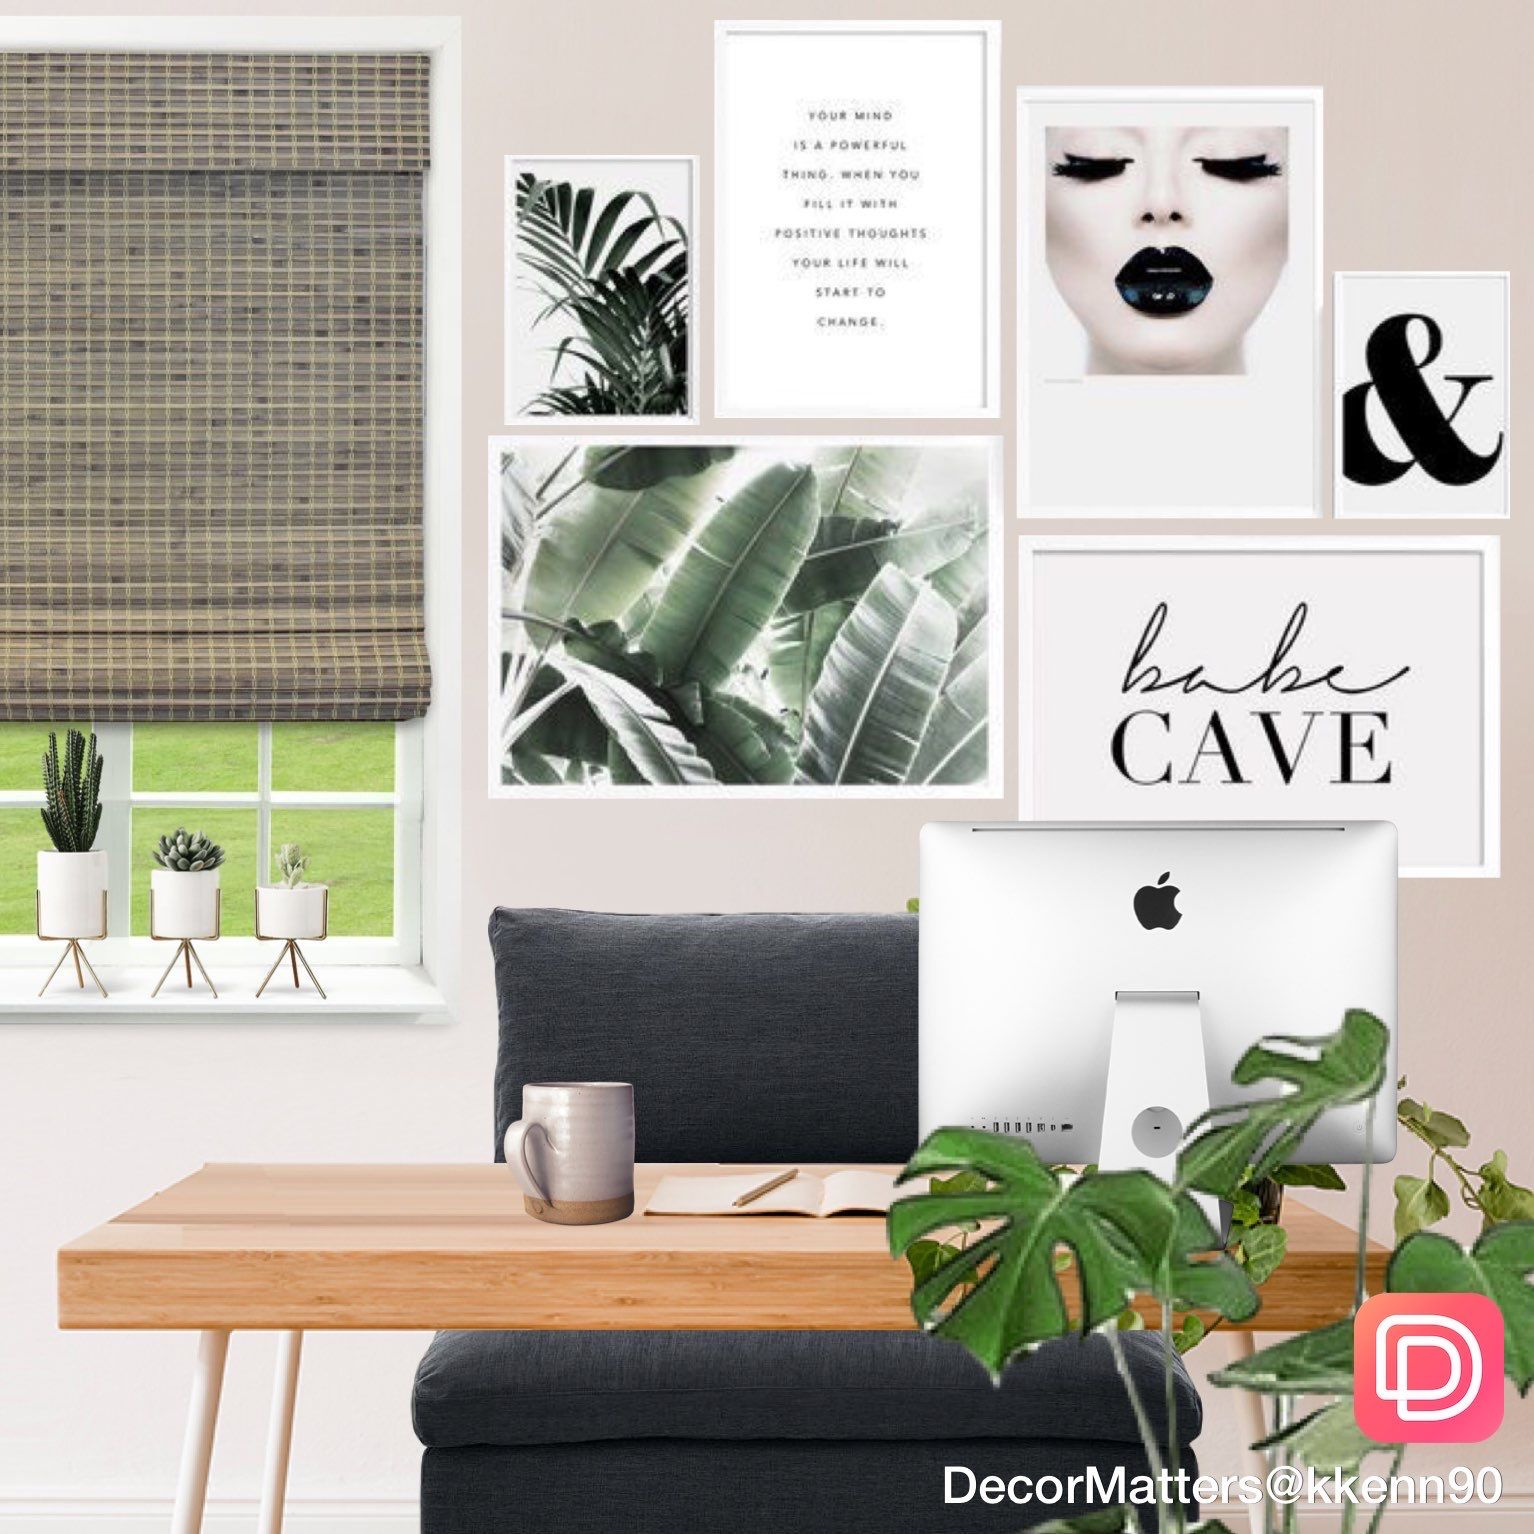 Love this wall gallery and stunning home office decor. Click the image to try our free home design app.  (Keywords: interior design apps, room design app, free home decor app, dream rooms, dream house, house design, room ideas, home decor, design home, decormatters, decormatters app, decor matters, home decor ideas, DIY home decor, positive vibes, positive thoughts)